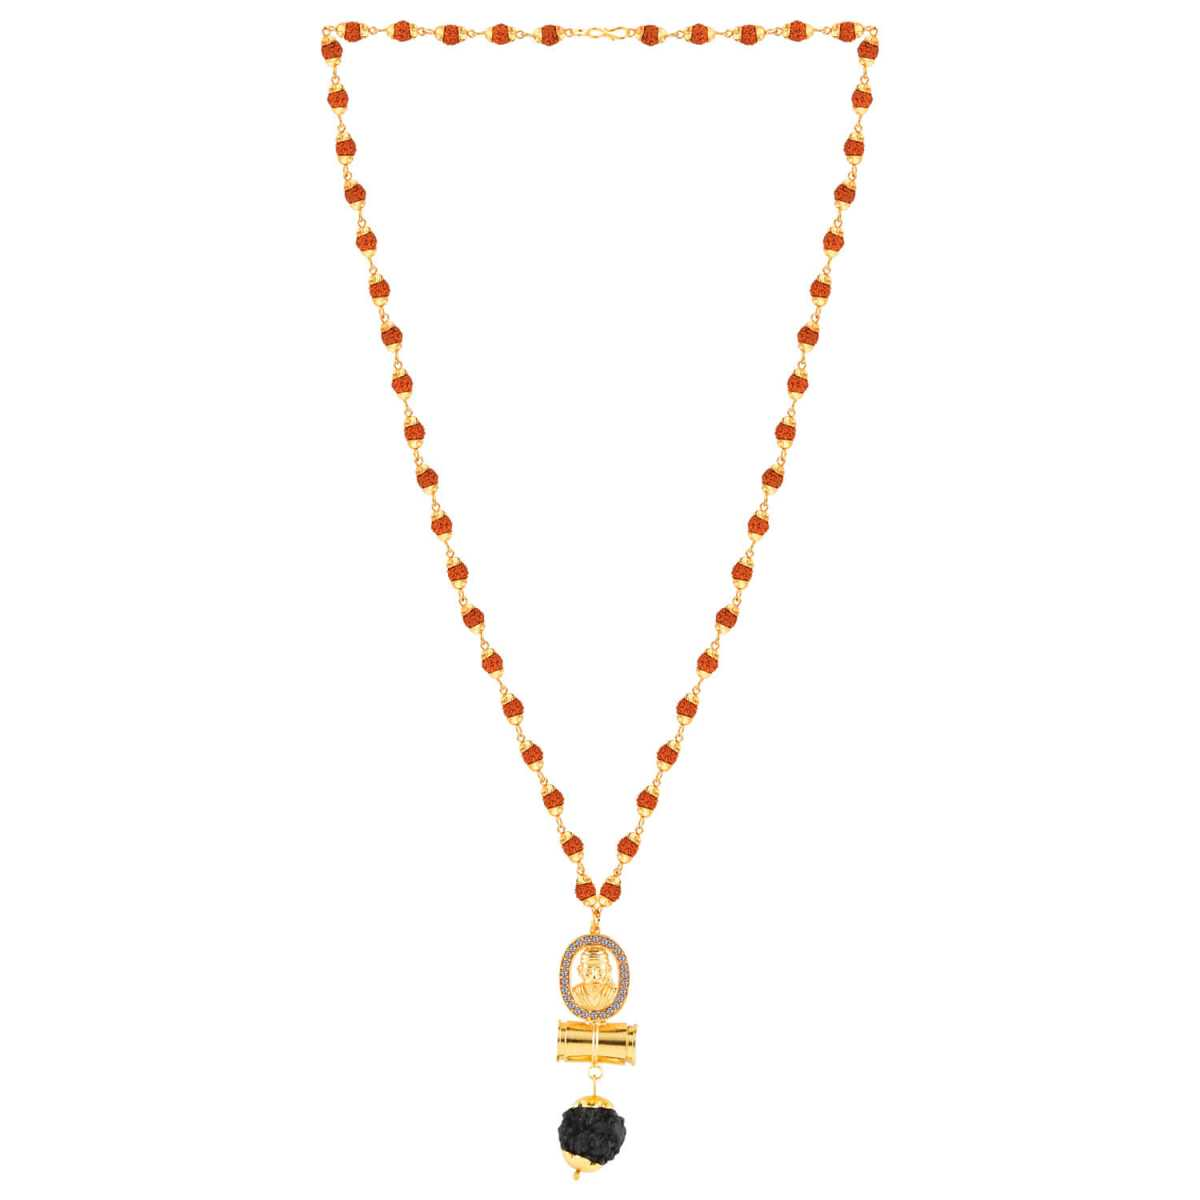 SILVER SHINE Gold Plated Traditional Rudraksh Mala SAI BABA Pendant Mala for Men and Women